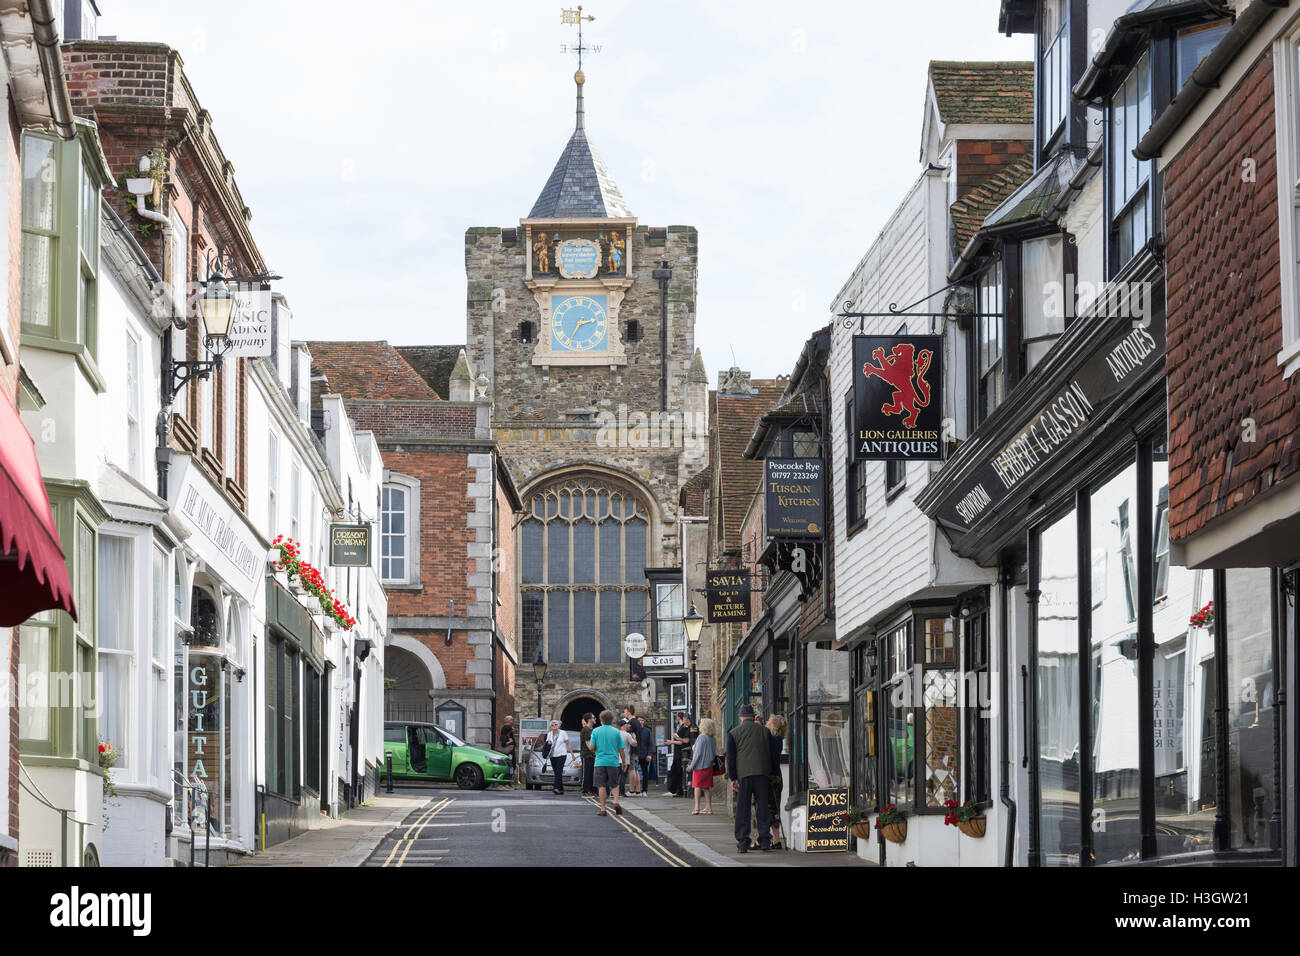 L'église St Mary, Lion Street, Rye, East Sussex, Angleterre, Royaume-Uni Photo Stock